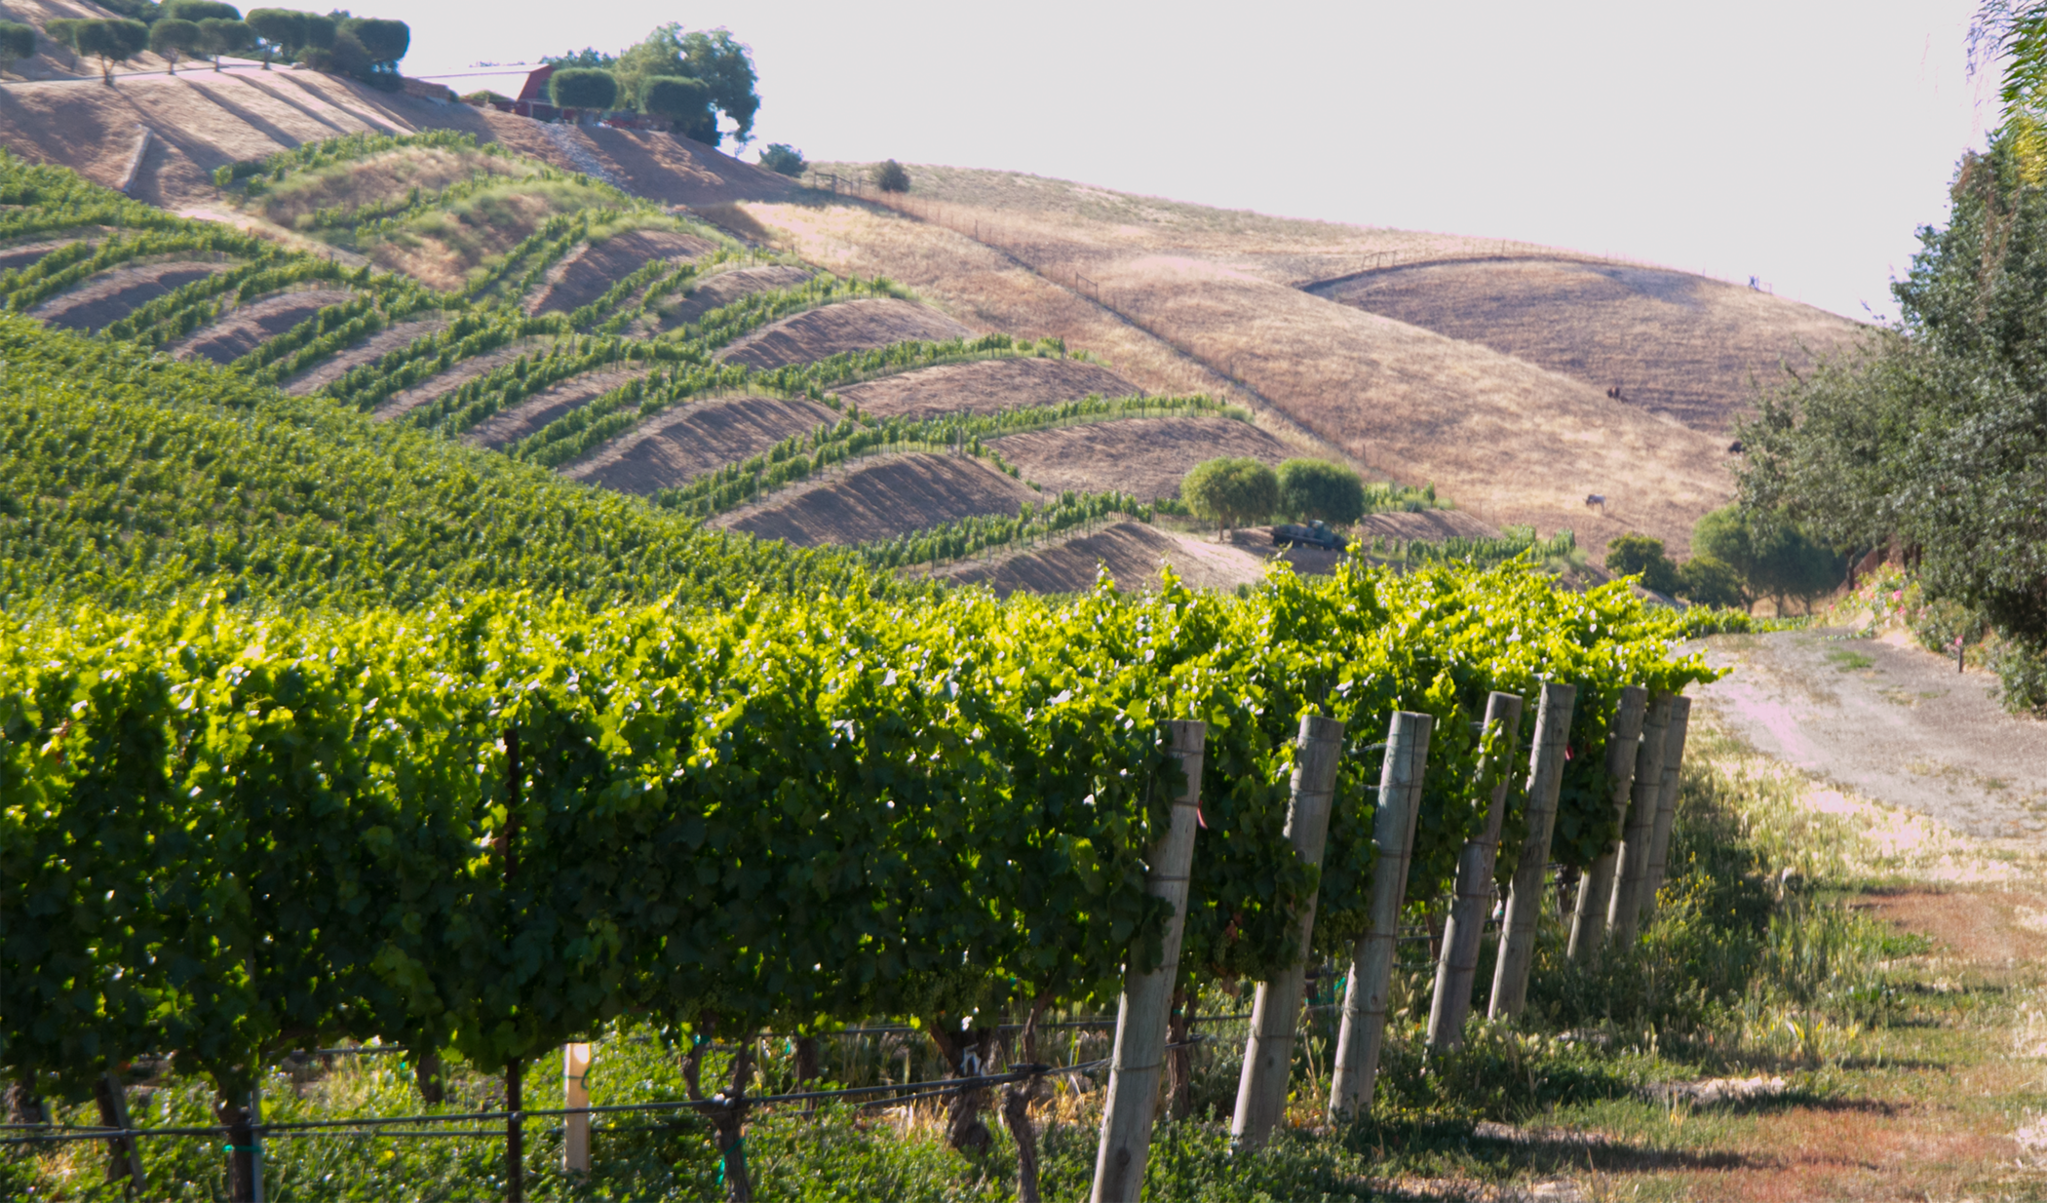 Two Thrilling Wineries Showcasing the Ballard Canyon AVA